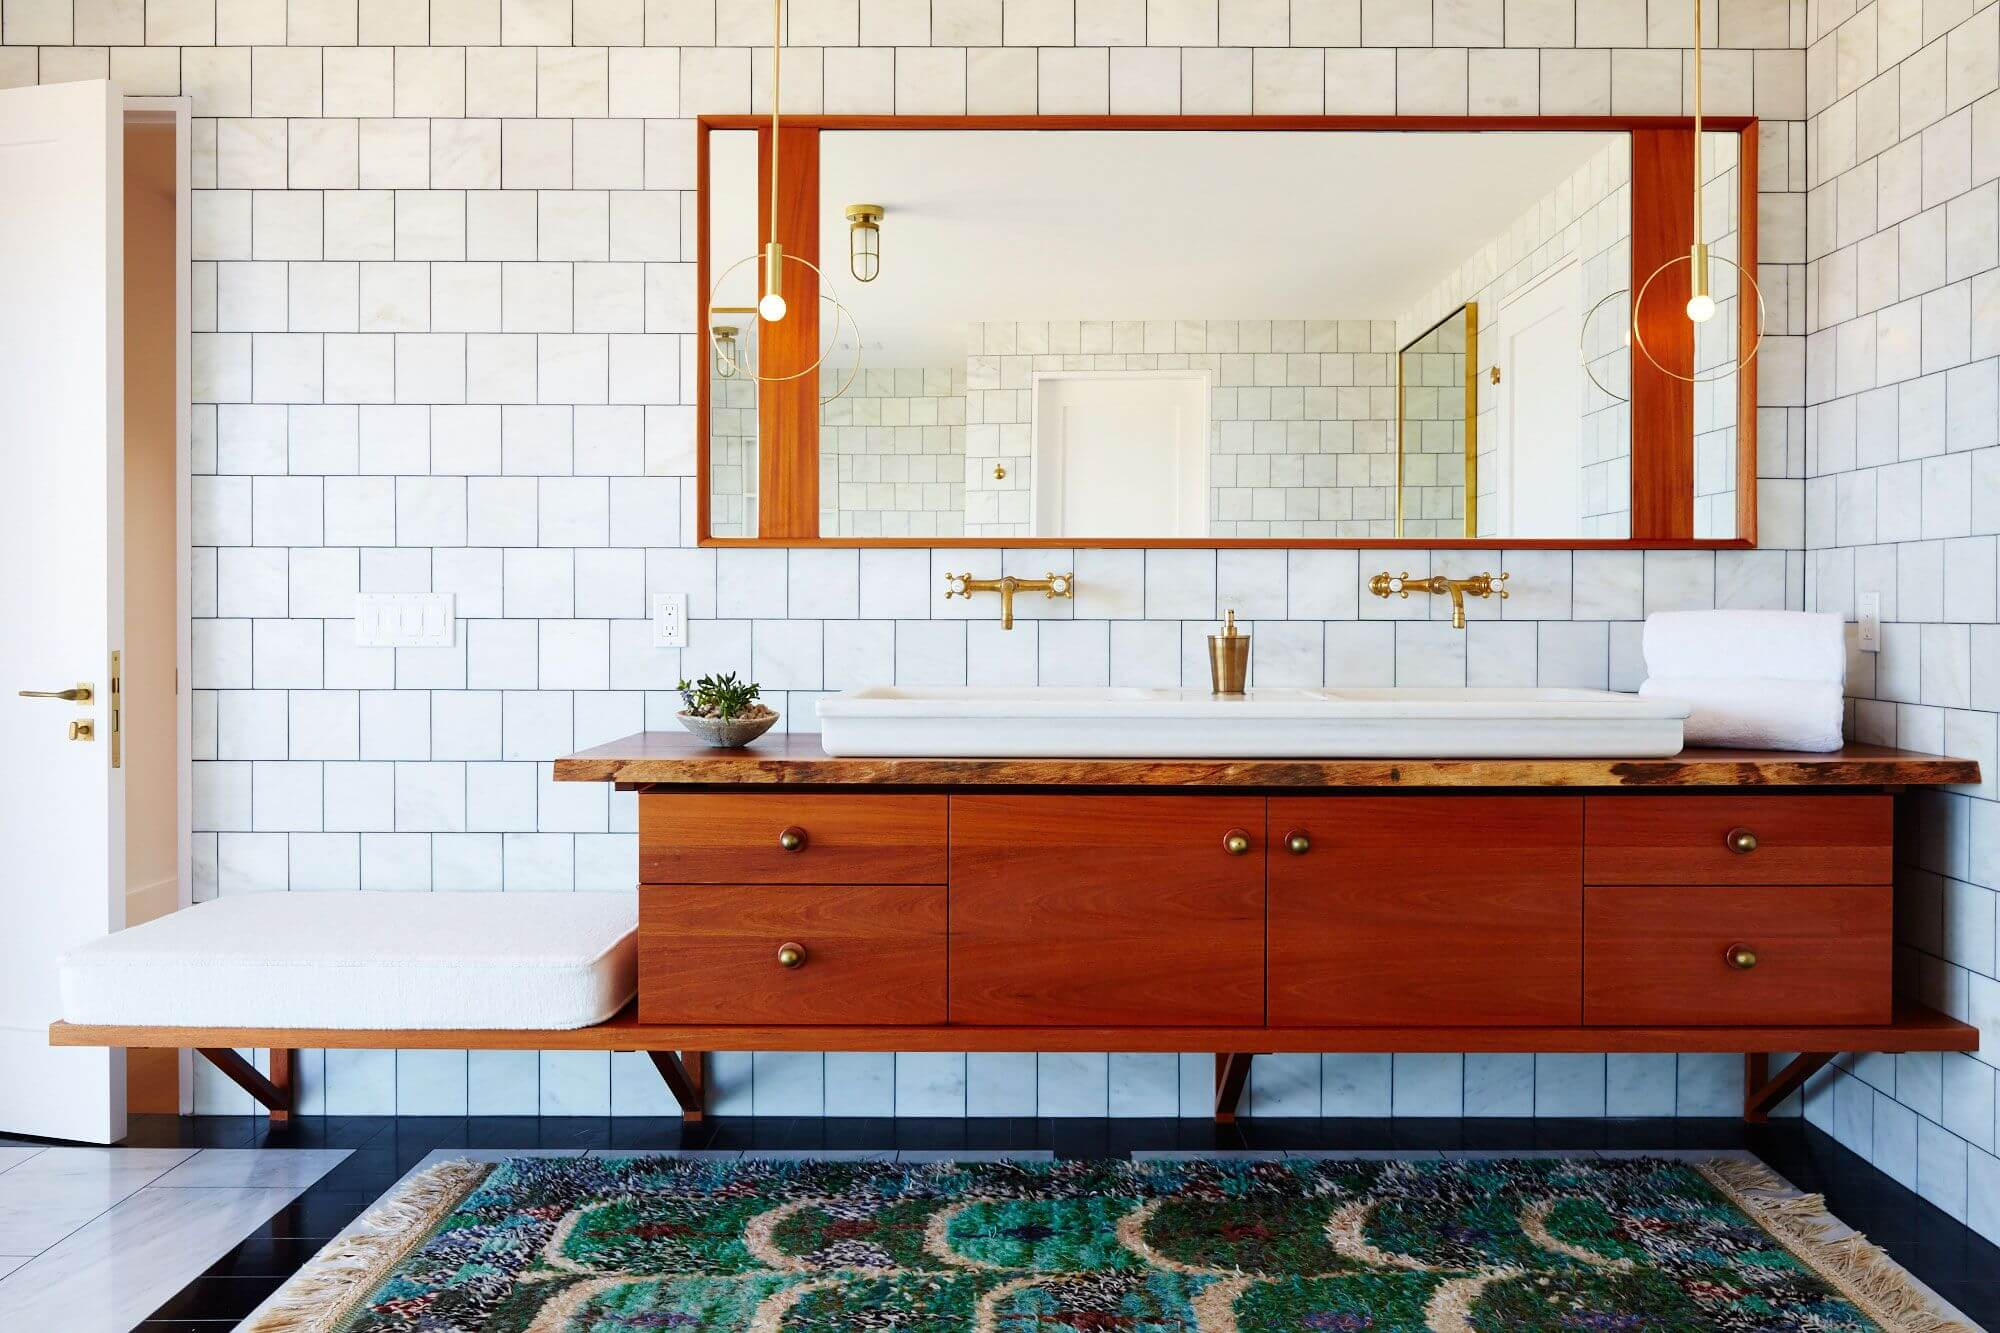 Another trick to creating a comfortable and not boring bathroom atmosphere is to add wooden elements